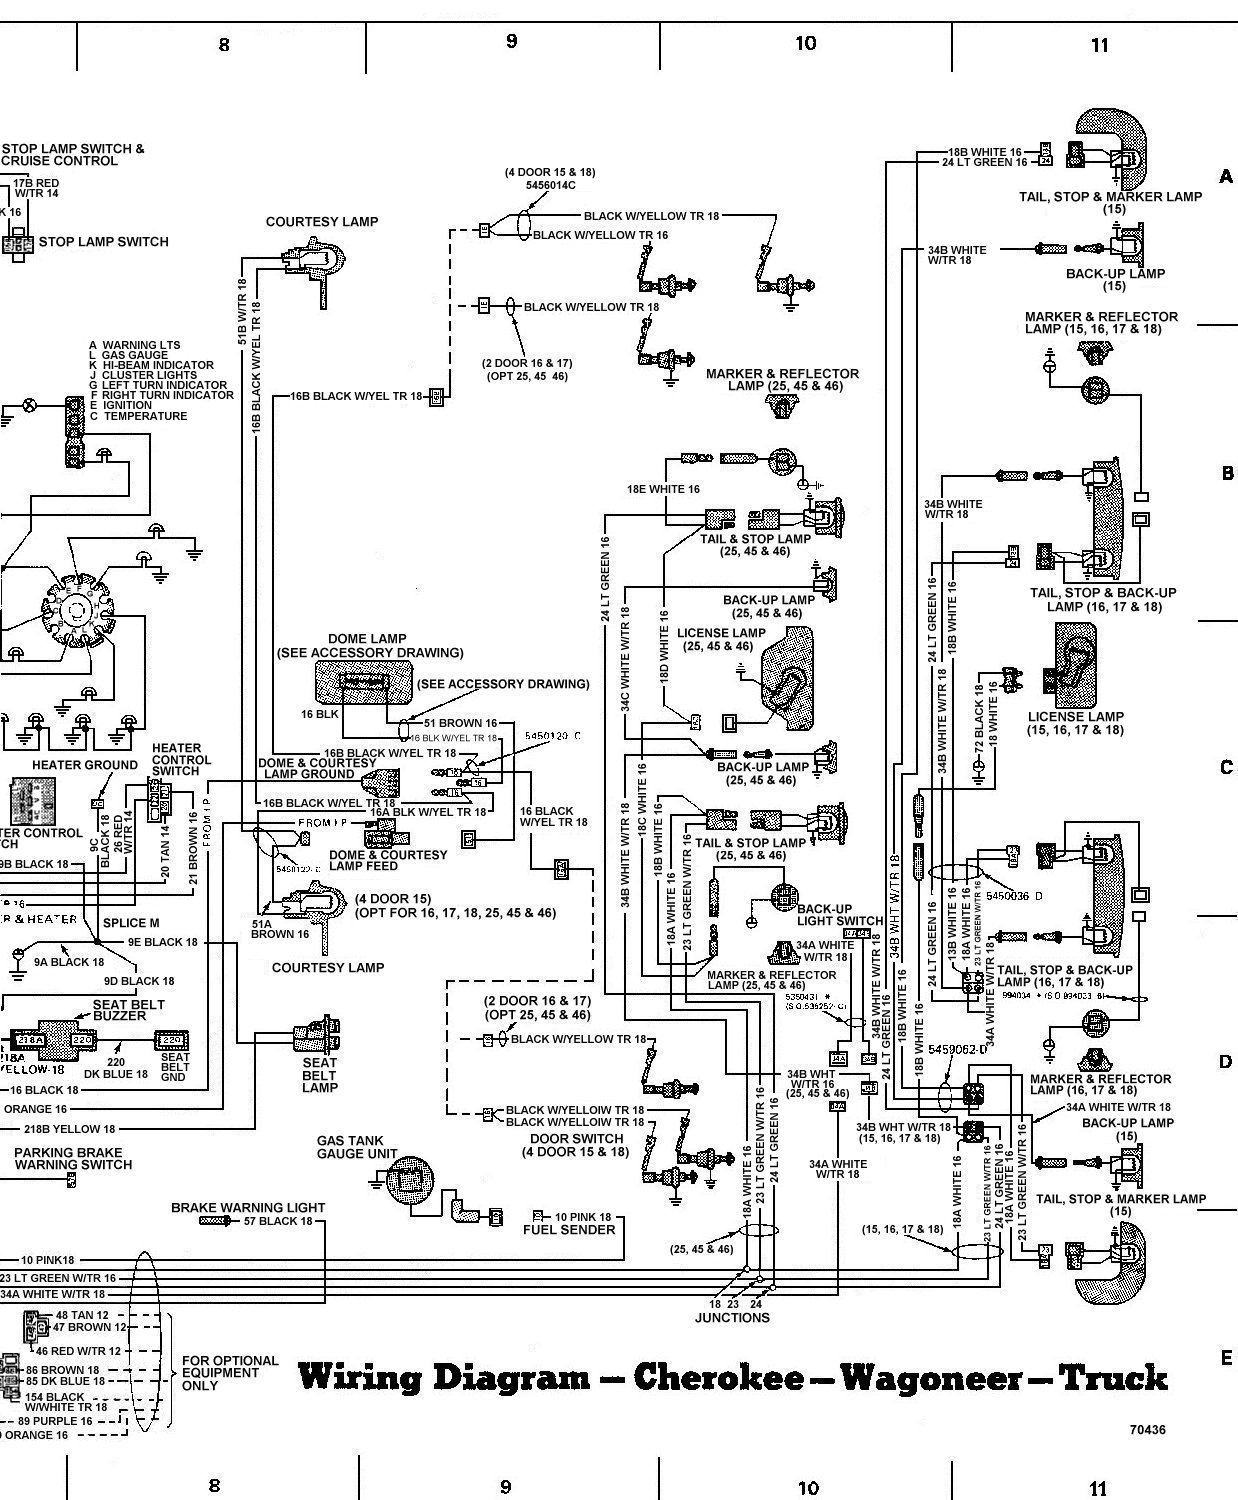 2010 Jeep Commander Wiring Diagram Just Data Patriot Diagrams Detailed Schematics 2002 Liberty